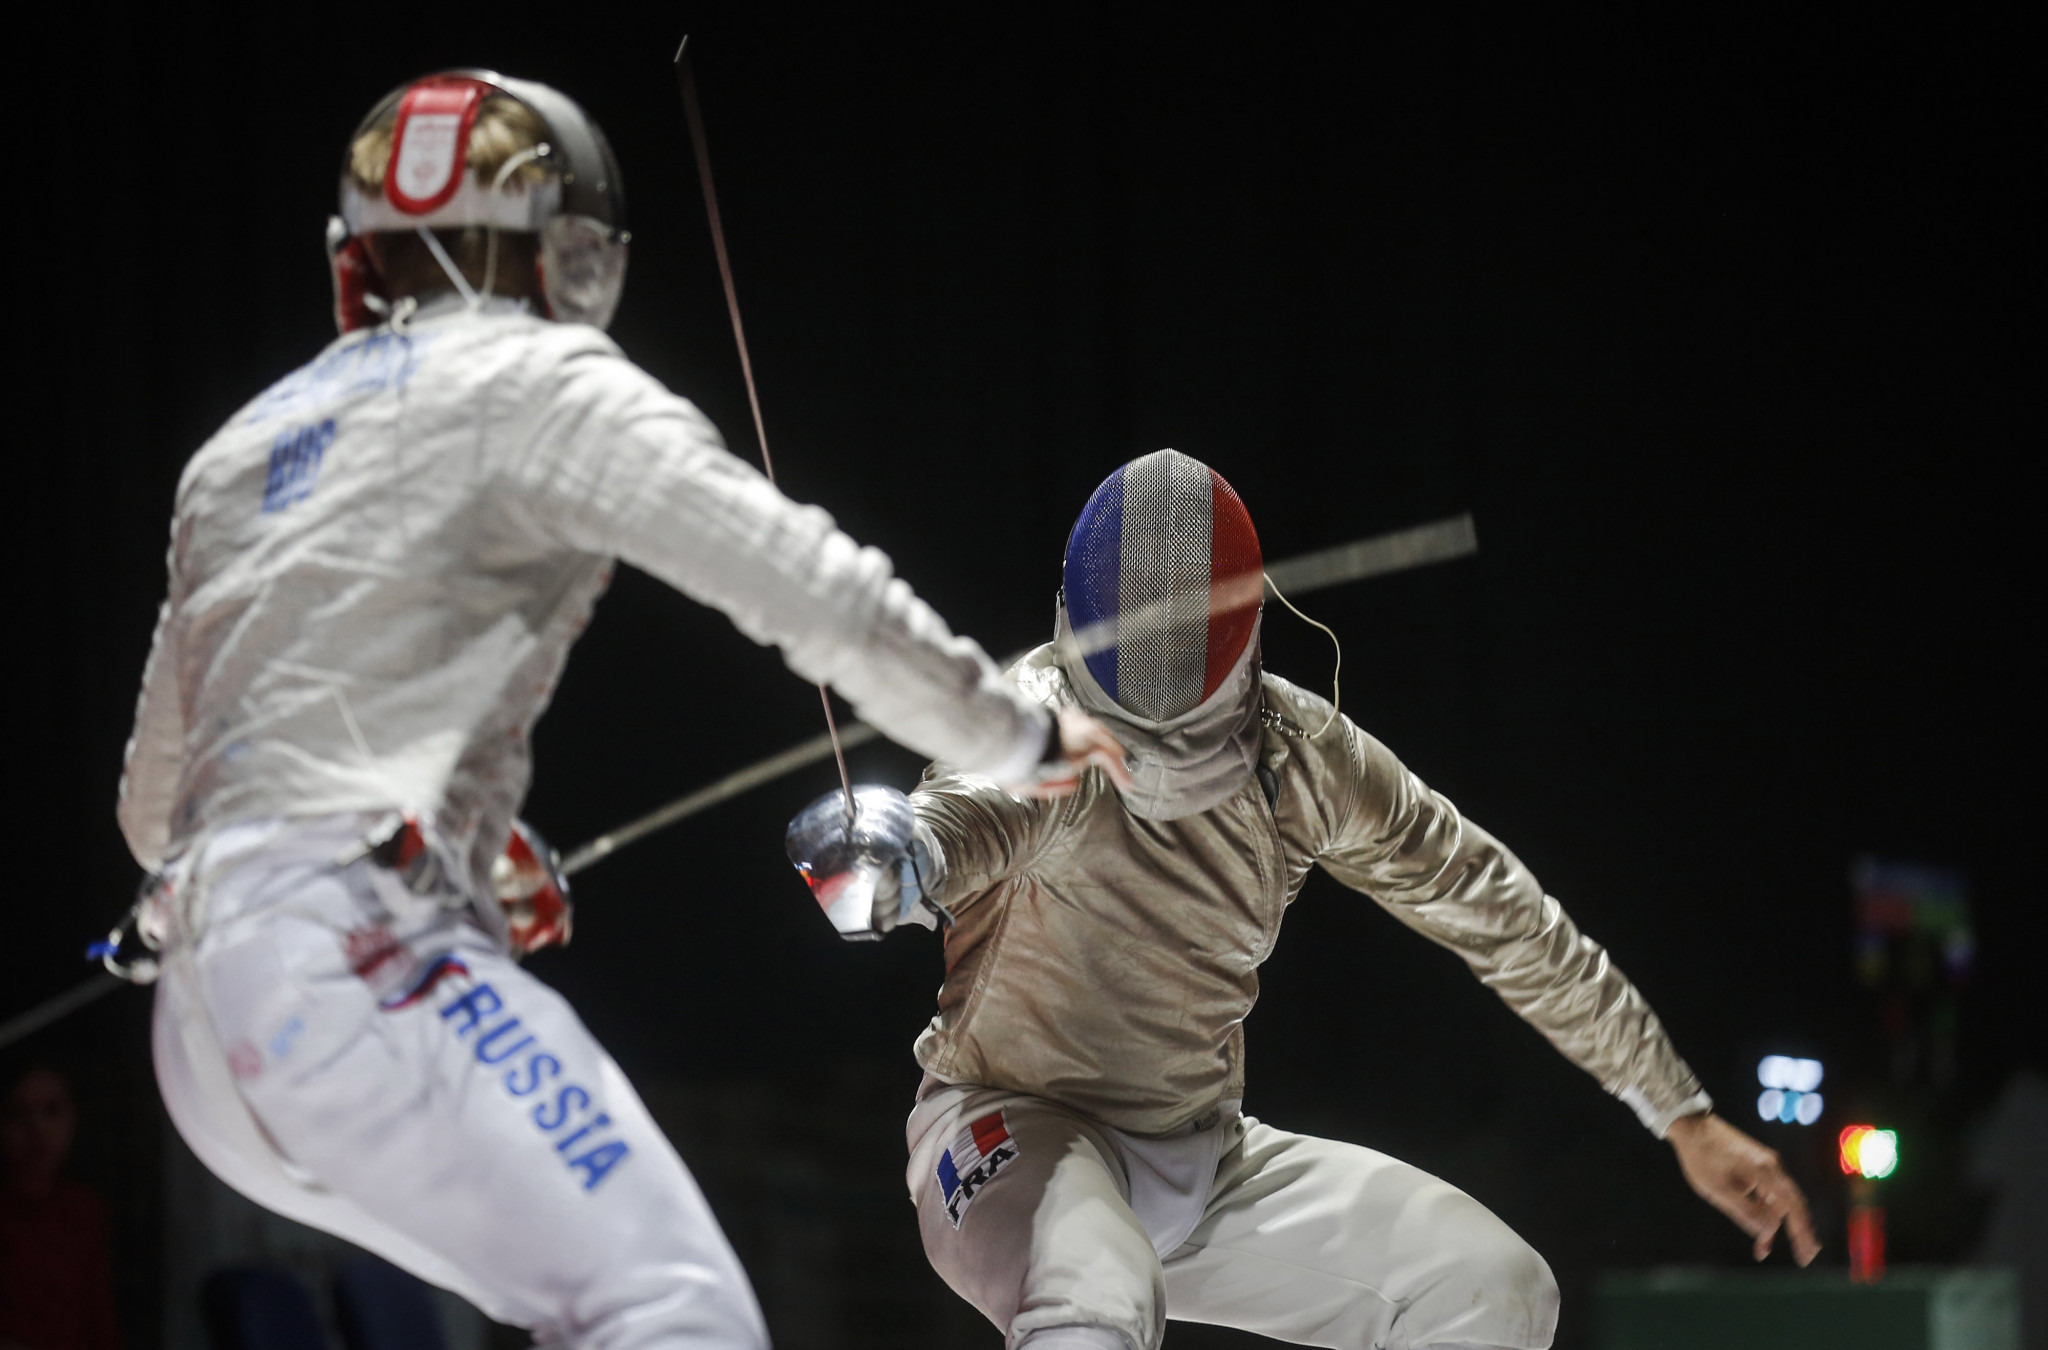 France were victorious in the men's team sabre in Poland ©Getty Images